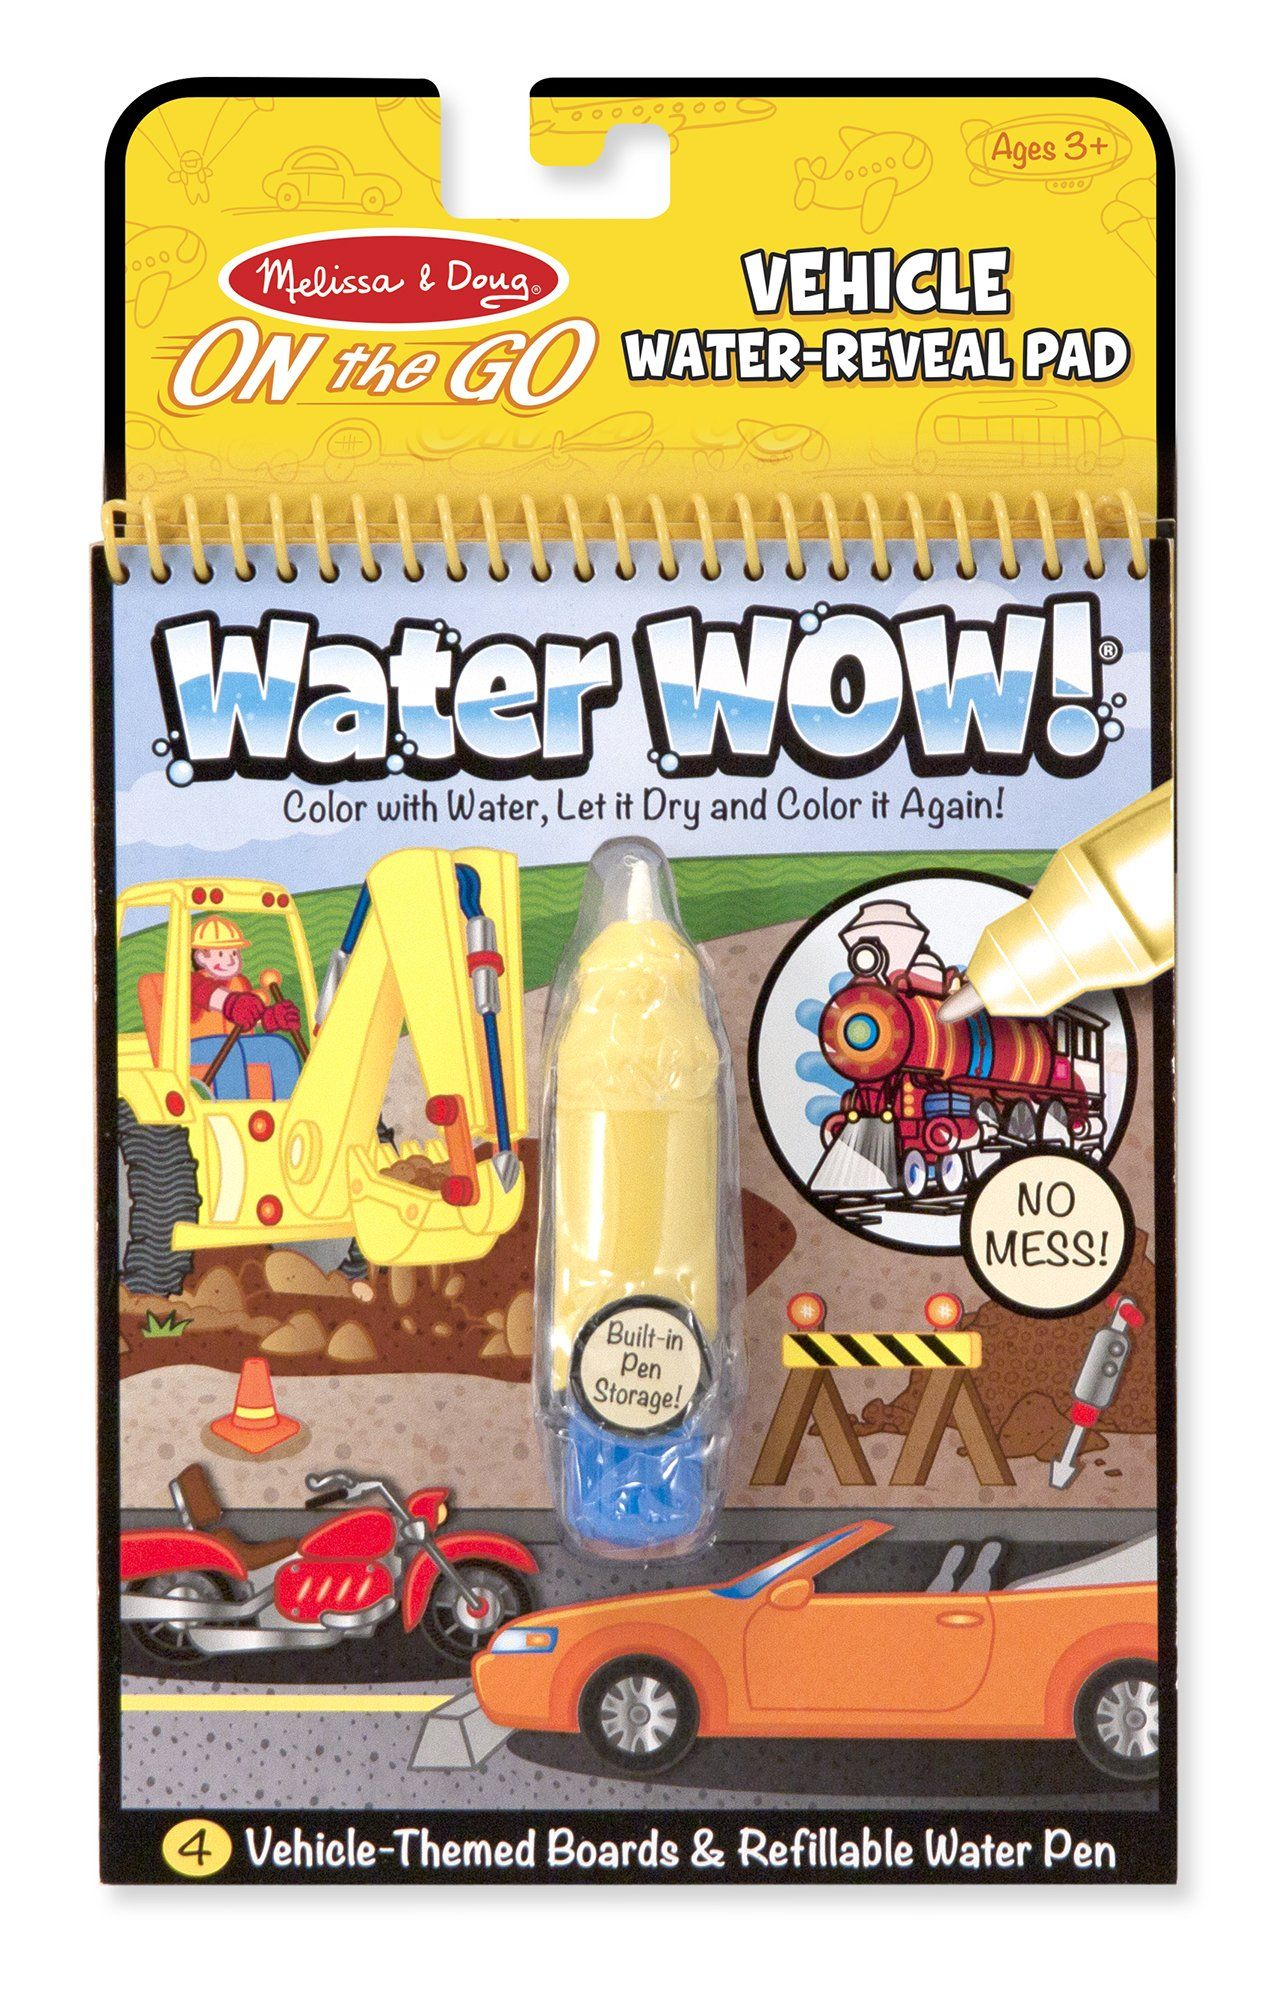 Amazon Com Melissa Doug On The Go Water Wow Water Reveal Pad Vehicles 4 Boards And Water Pen Meliss Coloring Books Christmas Gifts For Kids Travel Toys